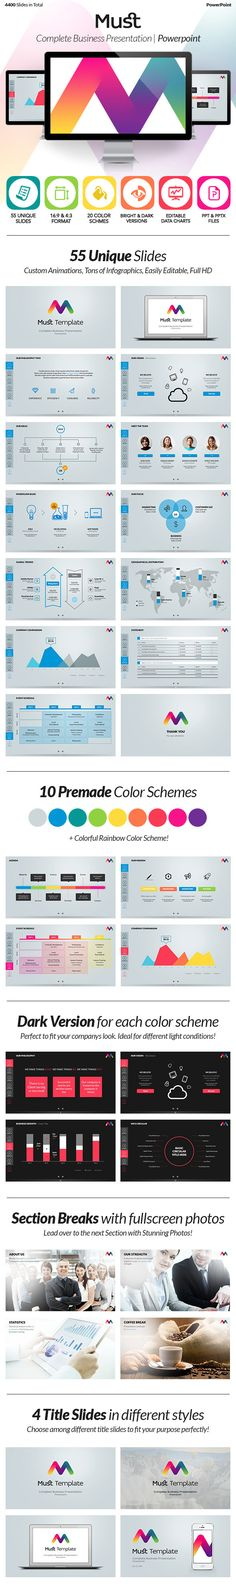 As the name says, this is a MUST-have Presentation for all creative, business, corporate and Industry users! With 55 unique custom slides, MUST offers a unique world of presenting. Everything you need is covered in this template, that was built profession…